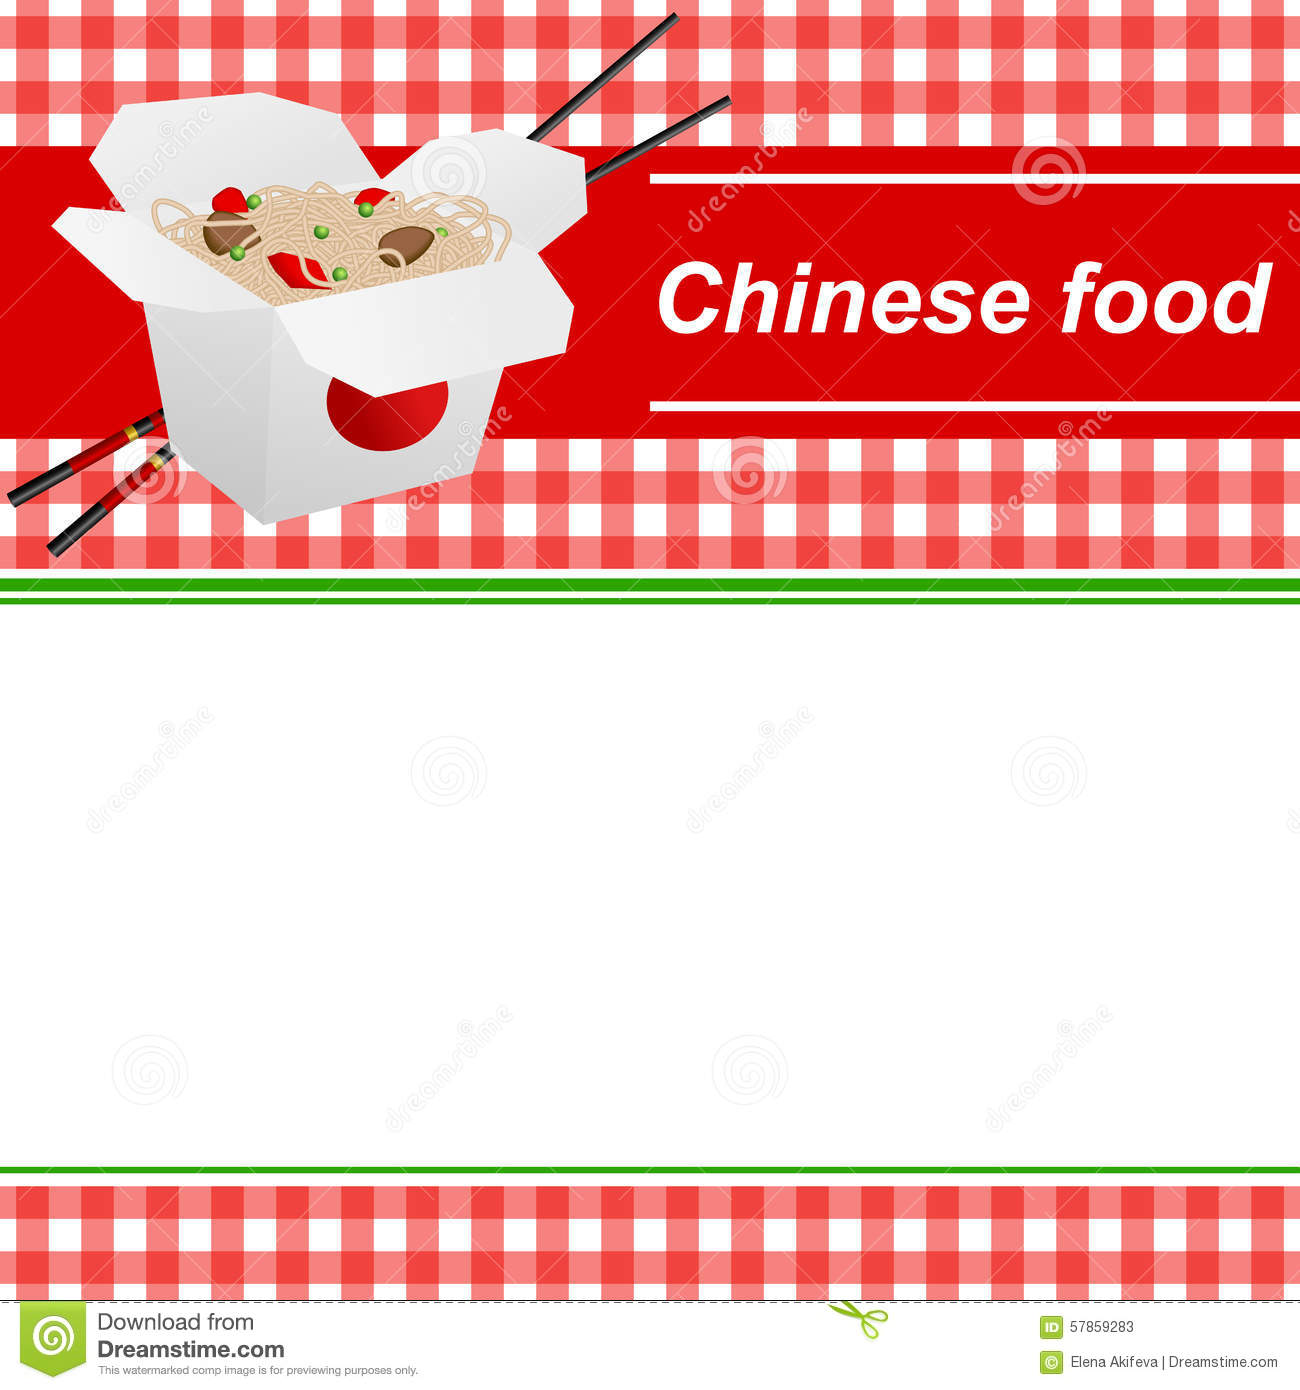 chinese food background - photo #6